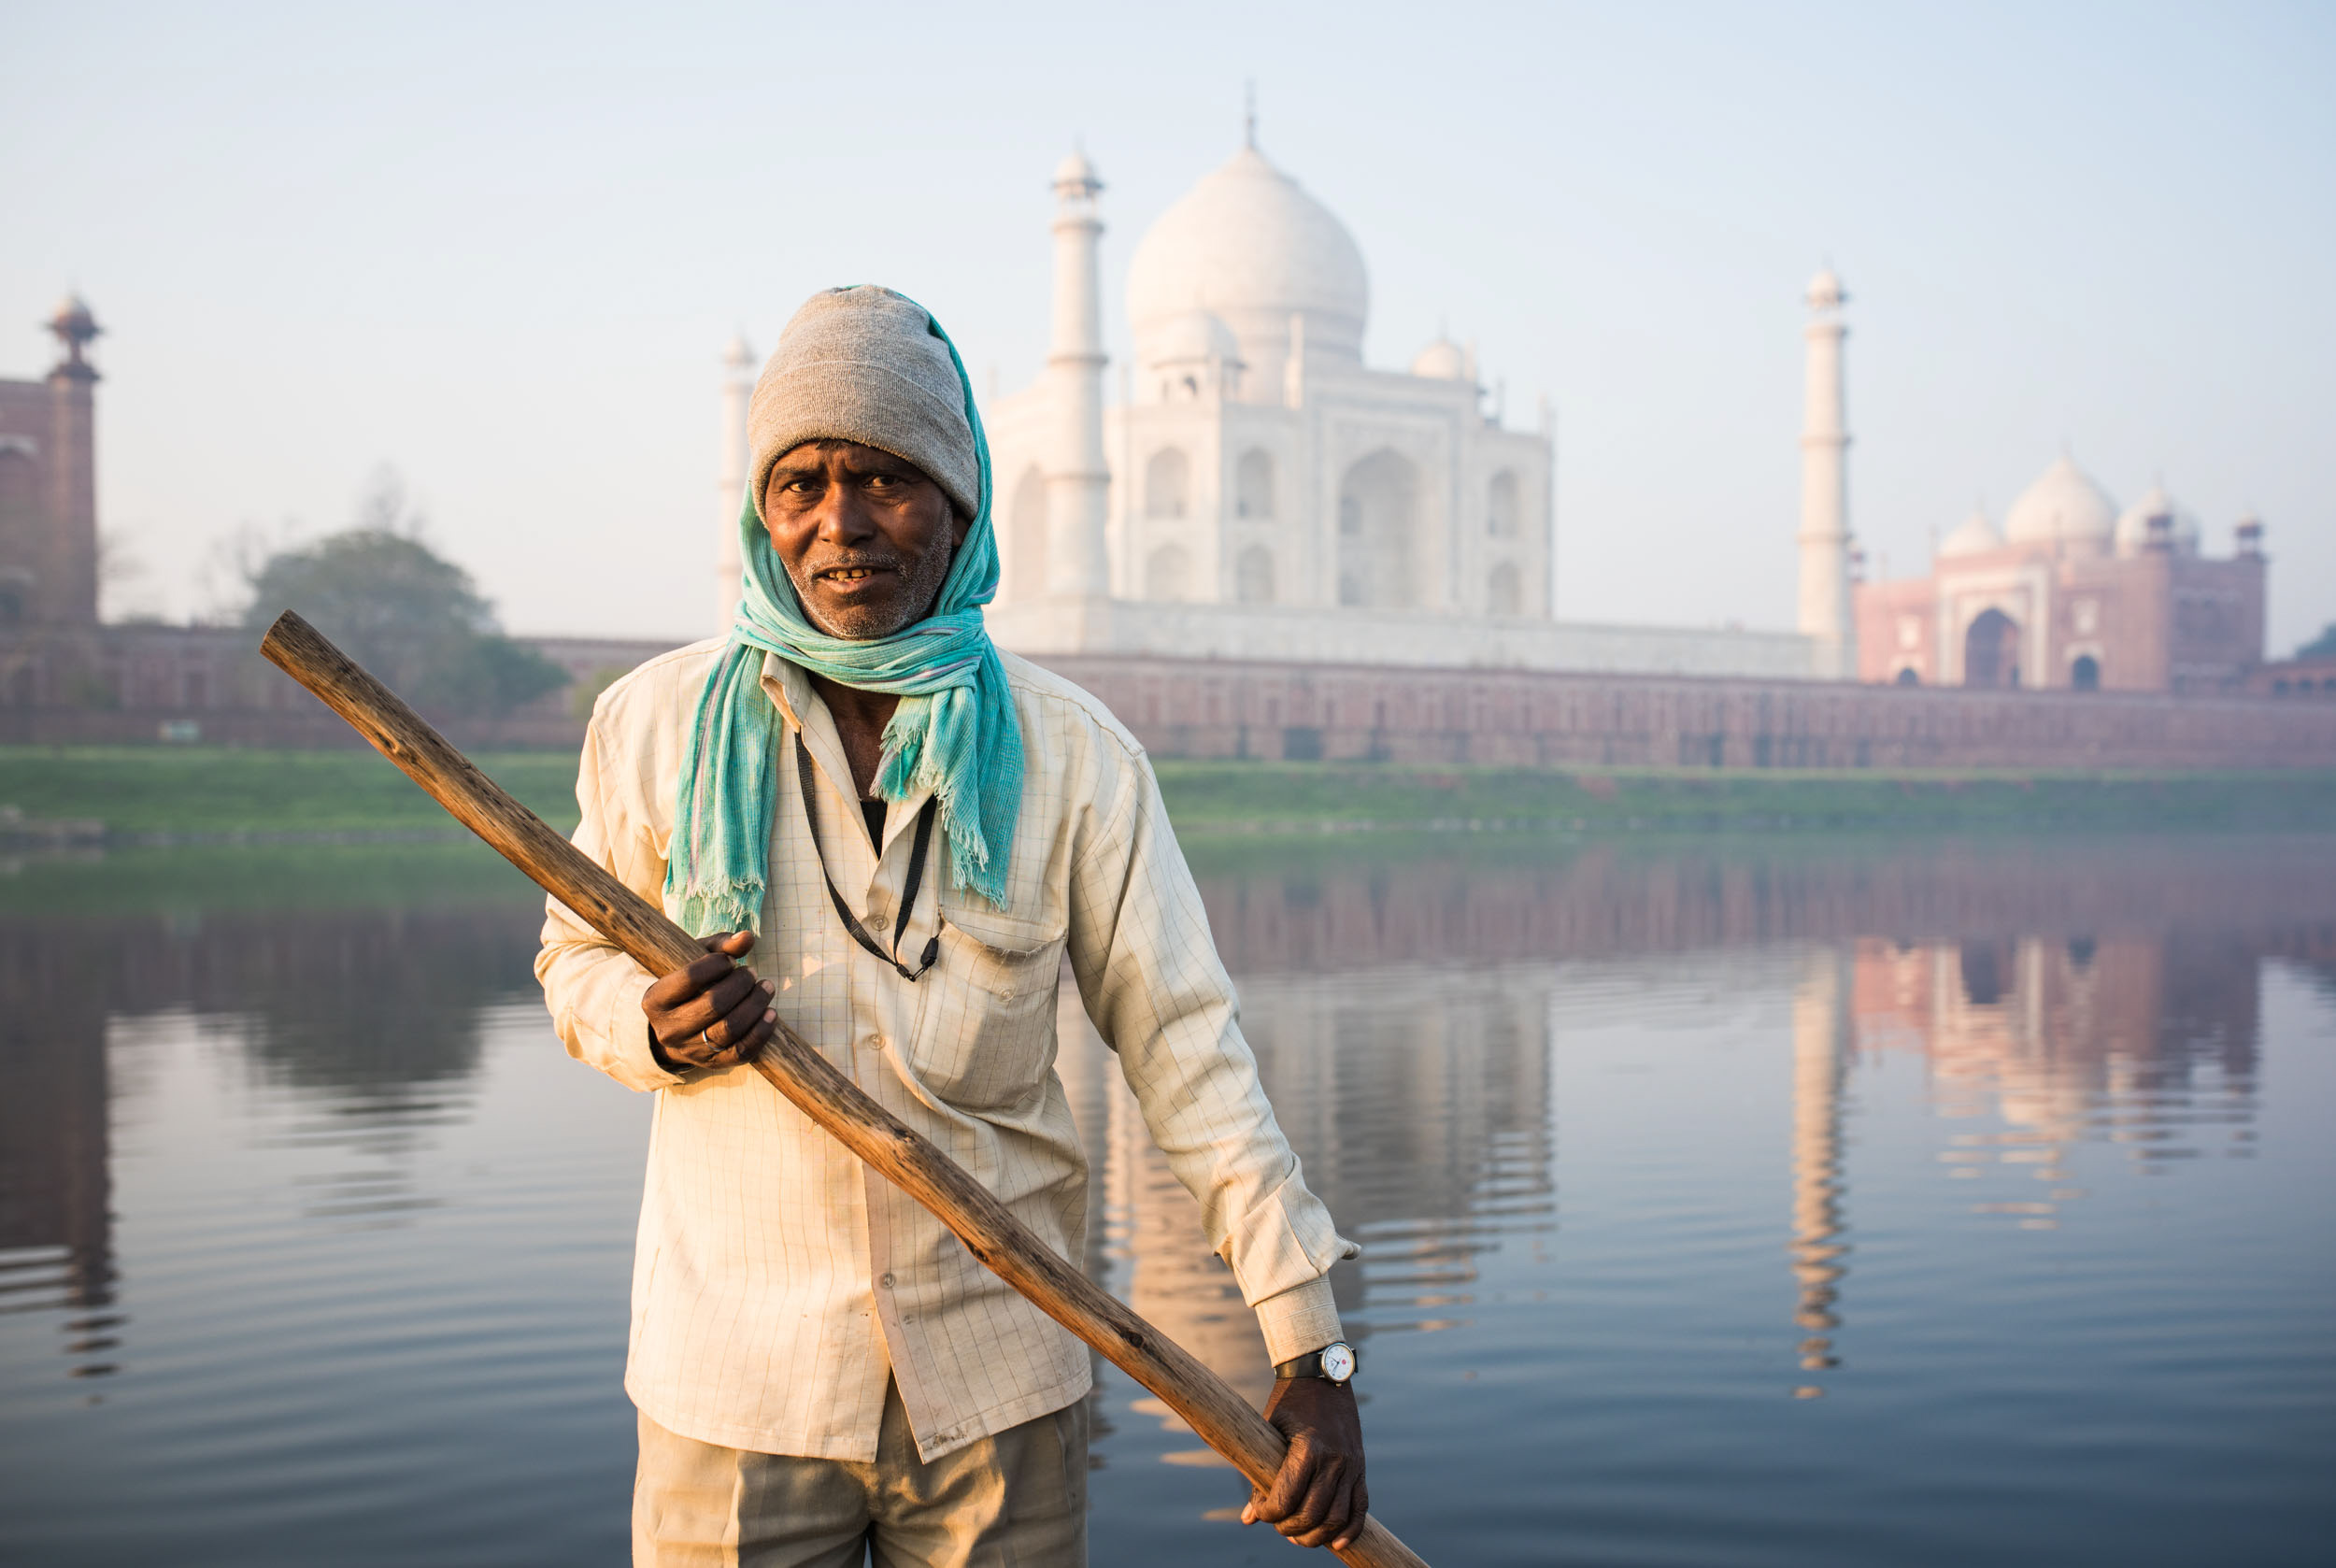 dawn-boatman-river-taj-mahal-agra-uttar-pradesh-india-travel-destination